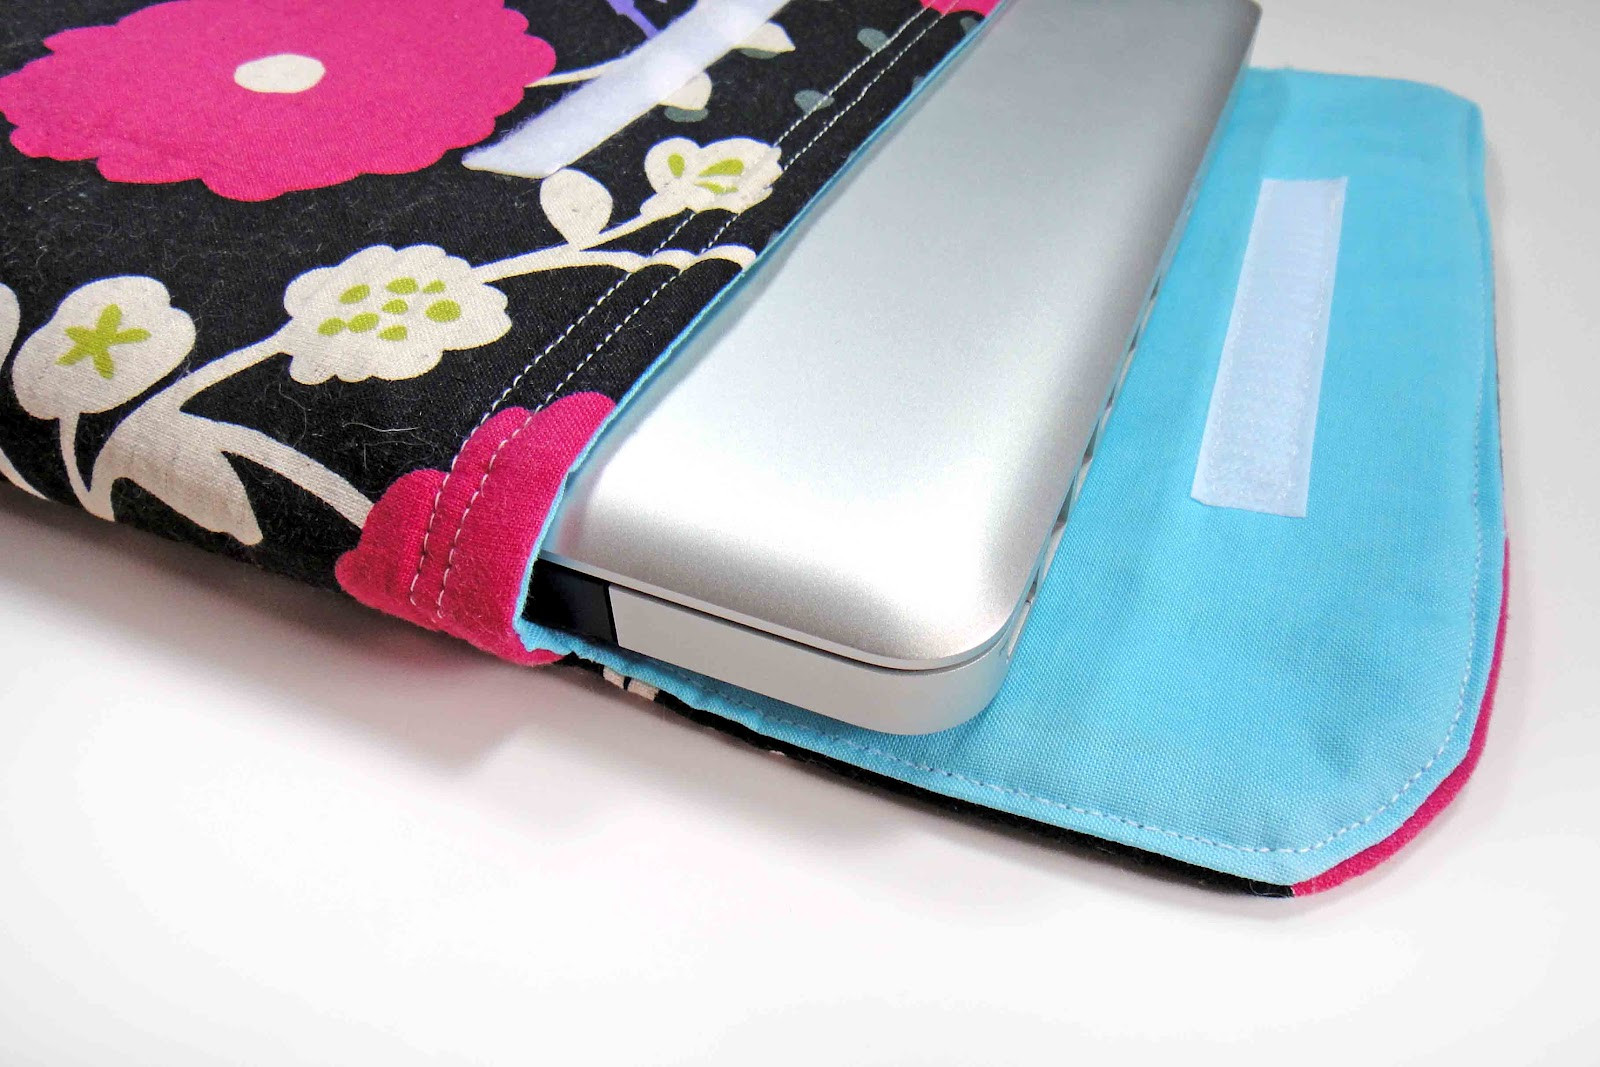 Best ideas about DIY Laptop Sleeve . Save or Pin The Gilded Hare diy laptop sleeve tutorial Now.